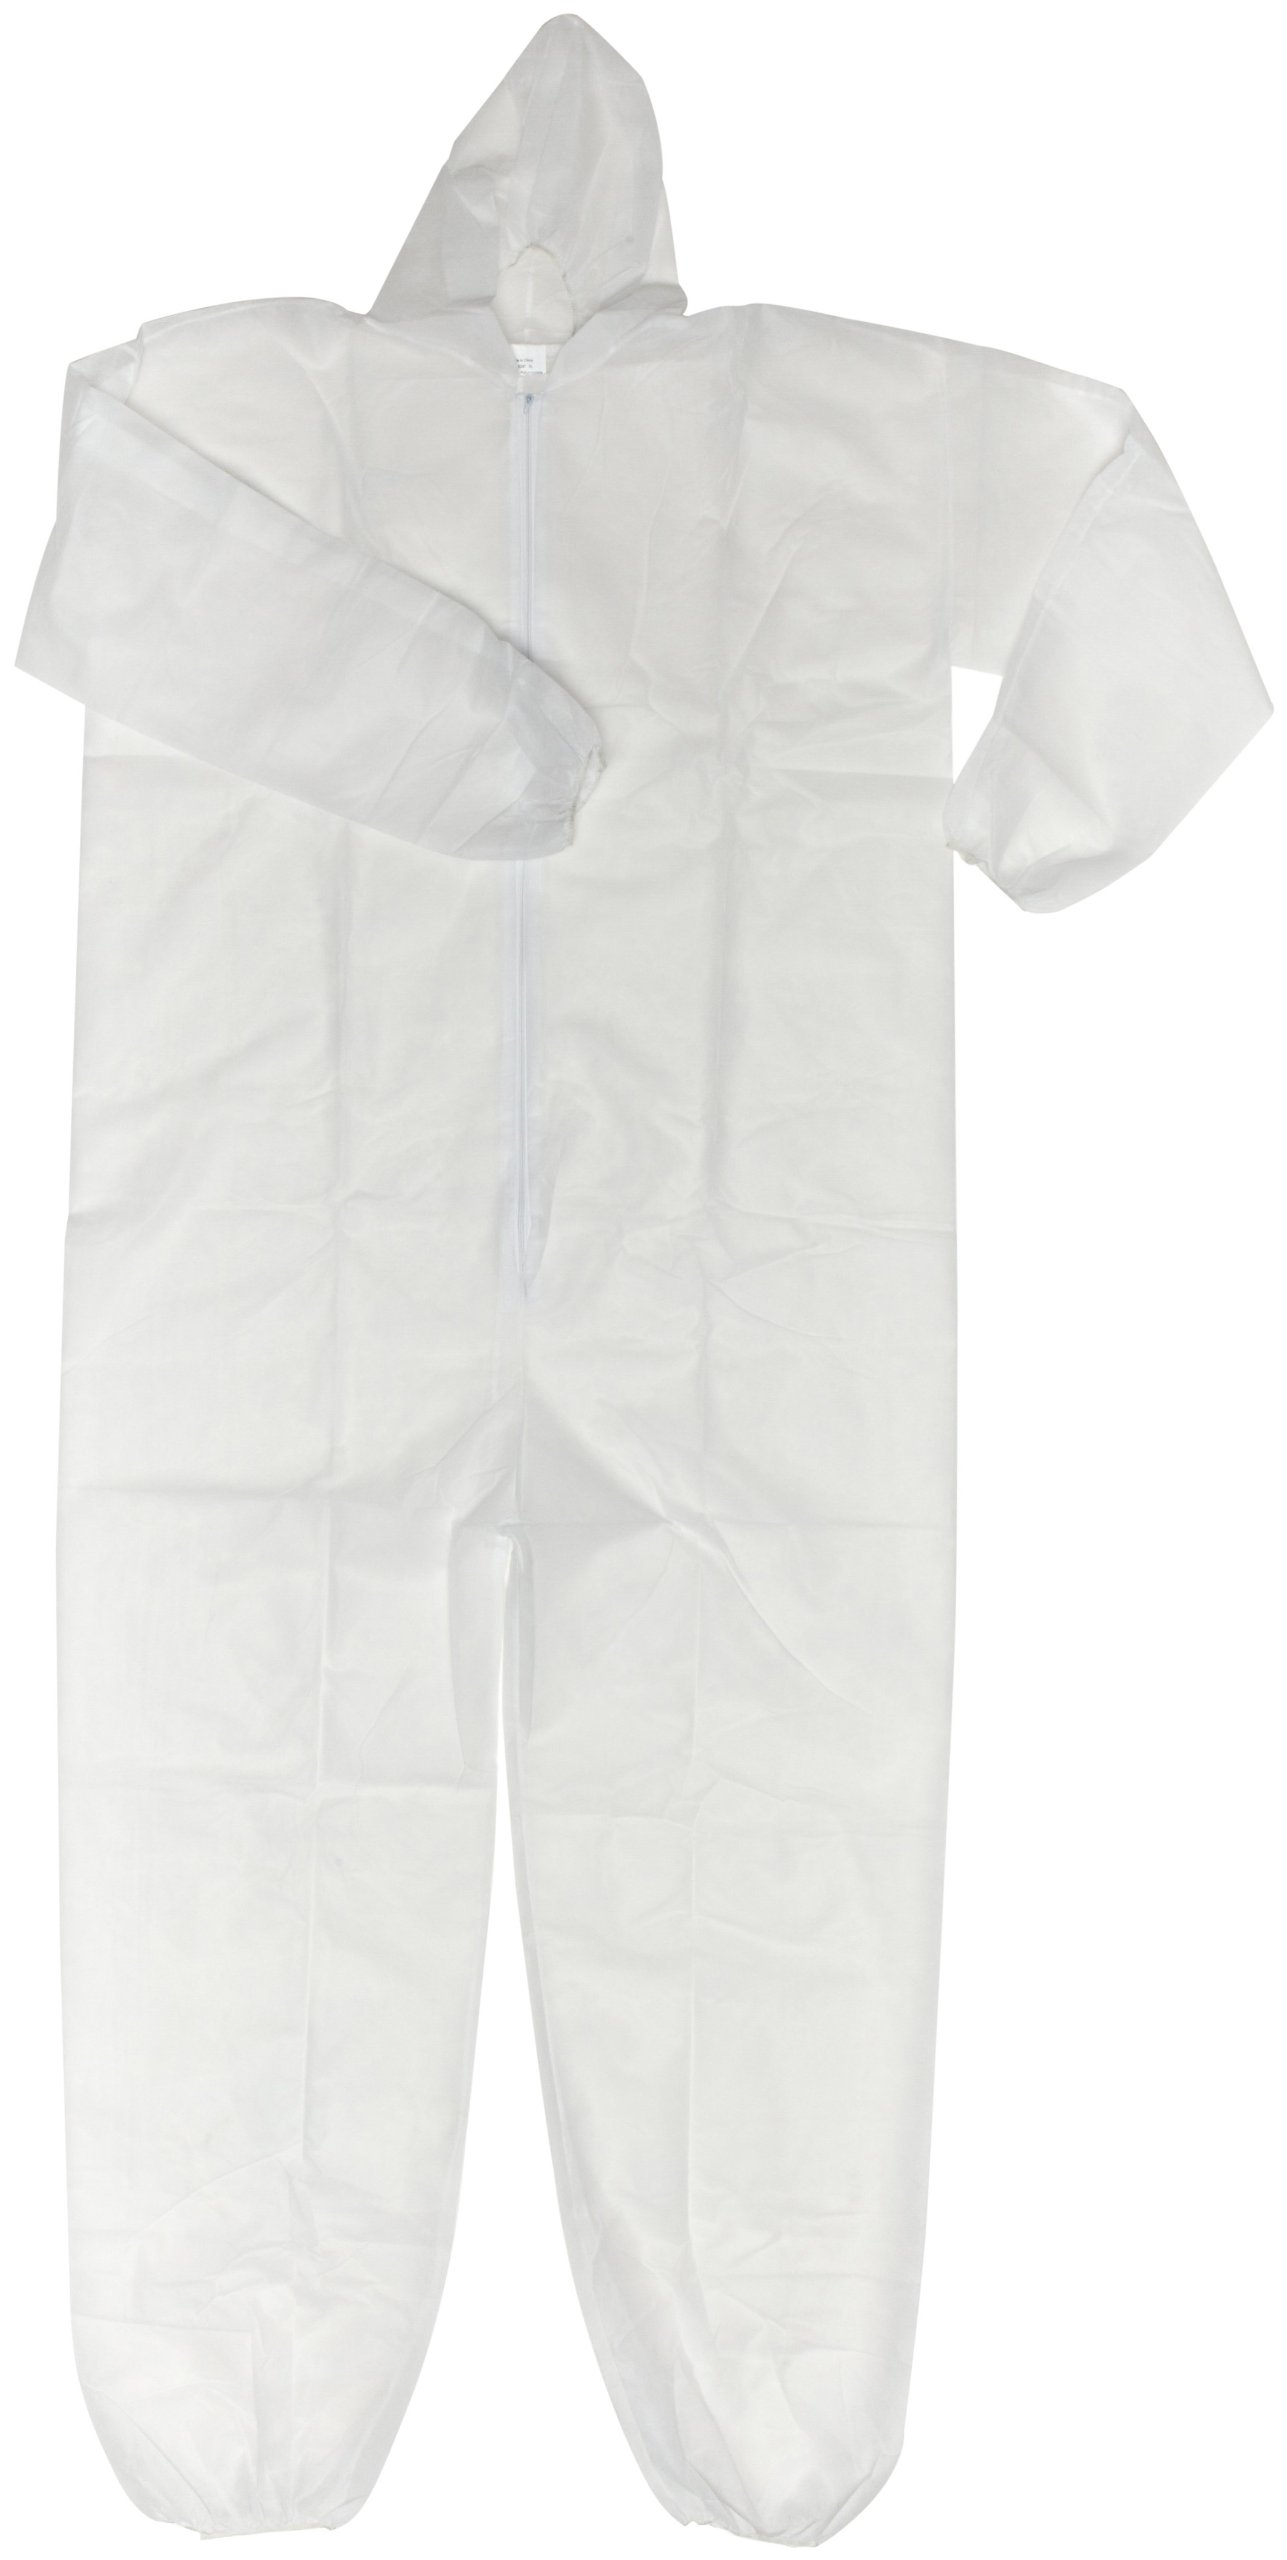 Magid EconoWear Lite N Kool Plus Polypropylene Coverall with Hood, Disposable, Elastic Cuff, White, X-Large (Case of 25)